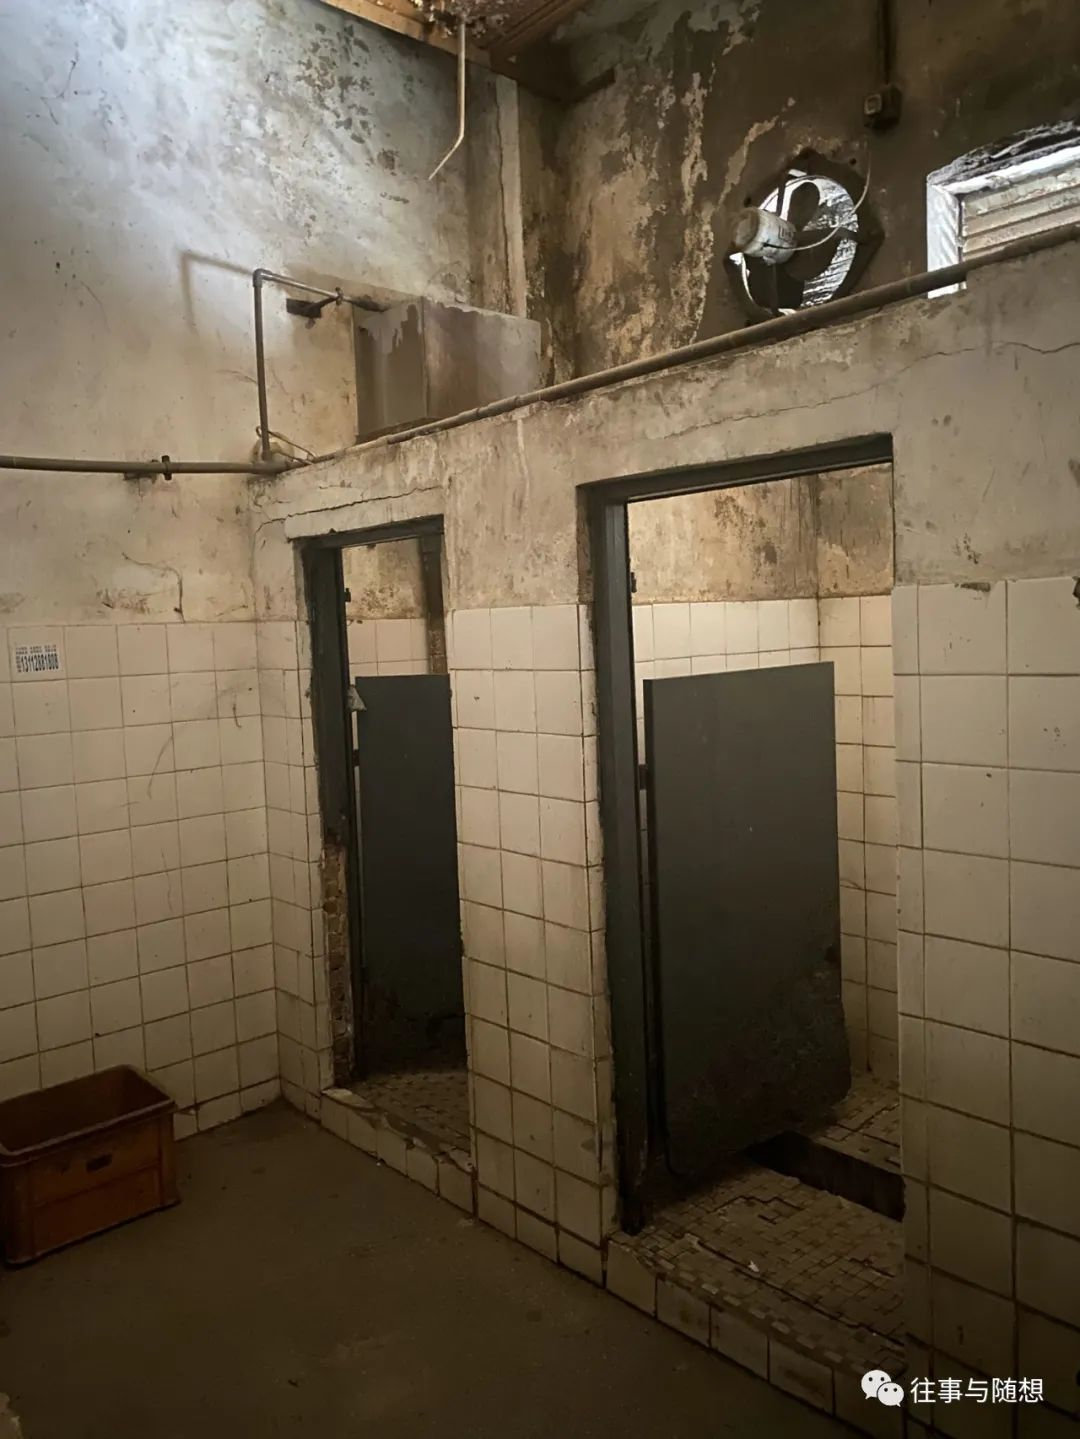 The interior of a very dirty and decrepit men's room with stained white tile, peeling walls and two squat toilet stalls with low wooden doors